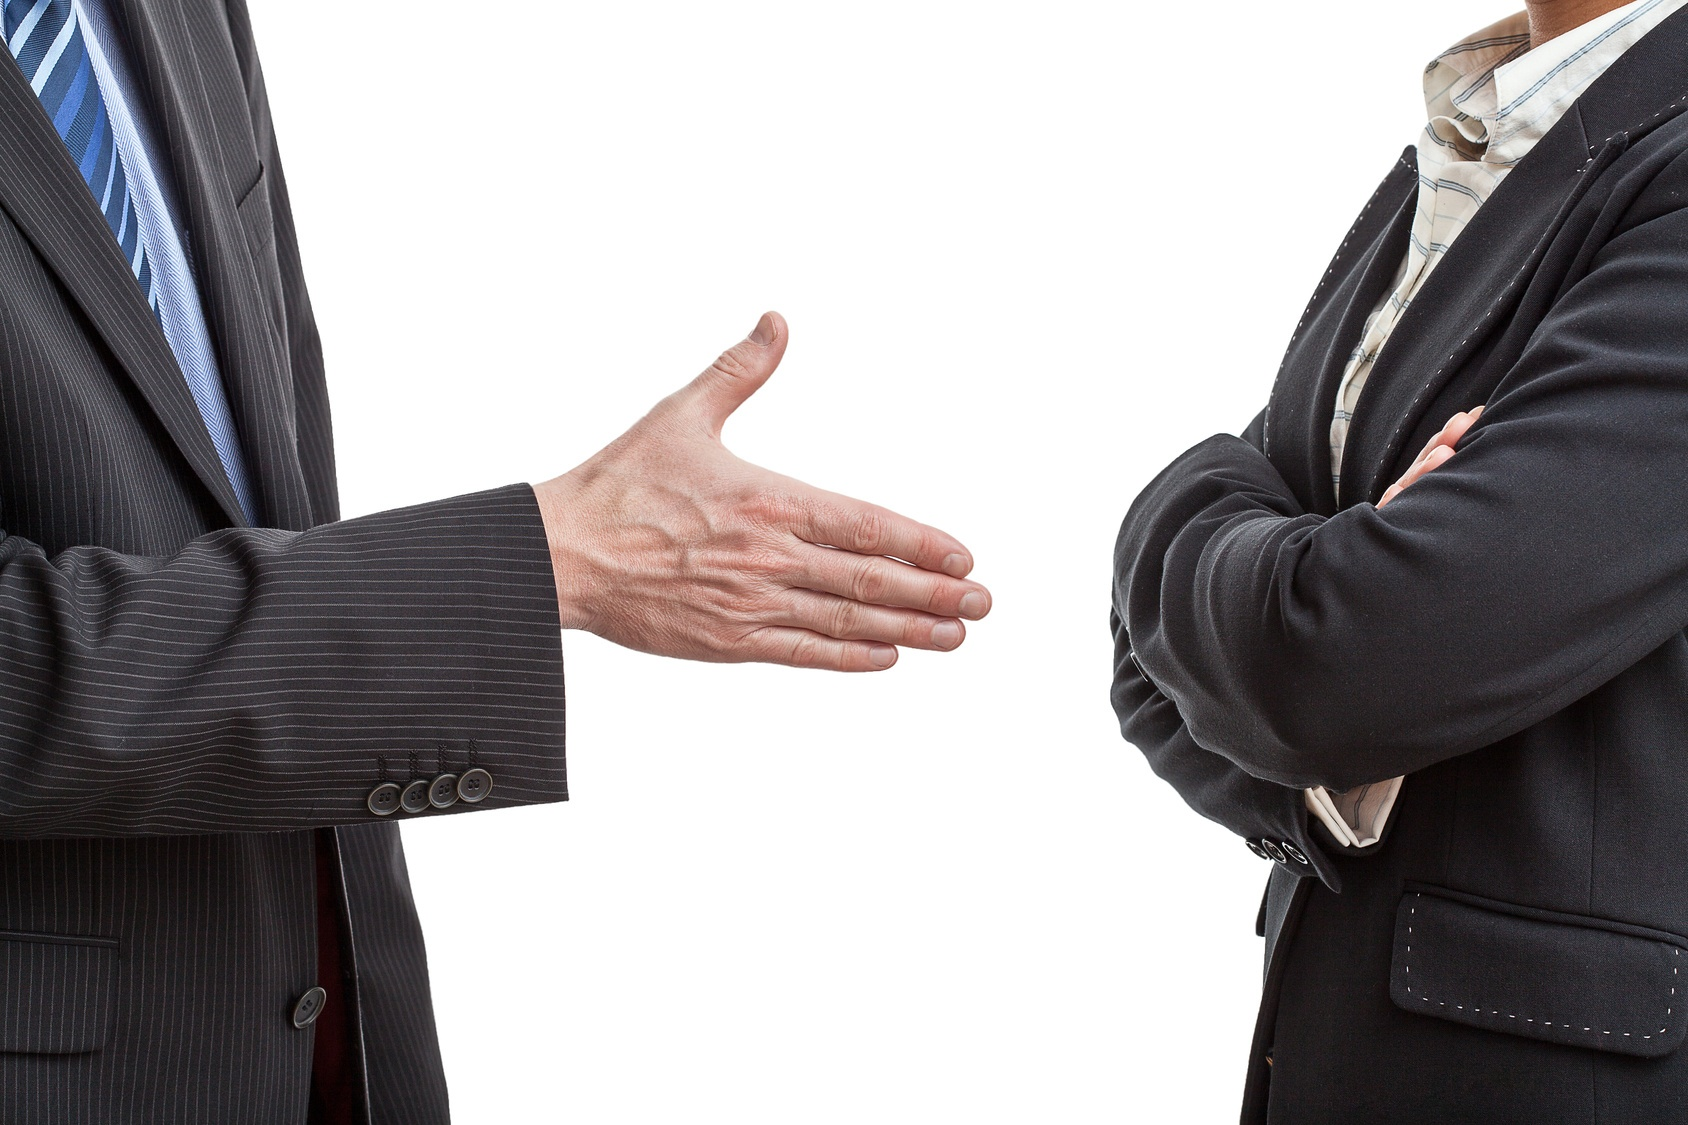 The Top 4 Reasons Why Sellers Lose Deals and How to Avoid Them